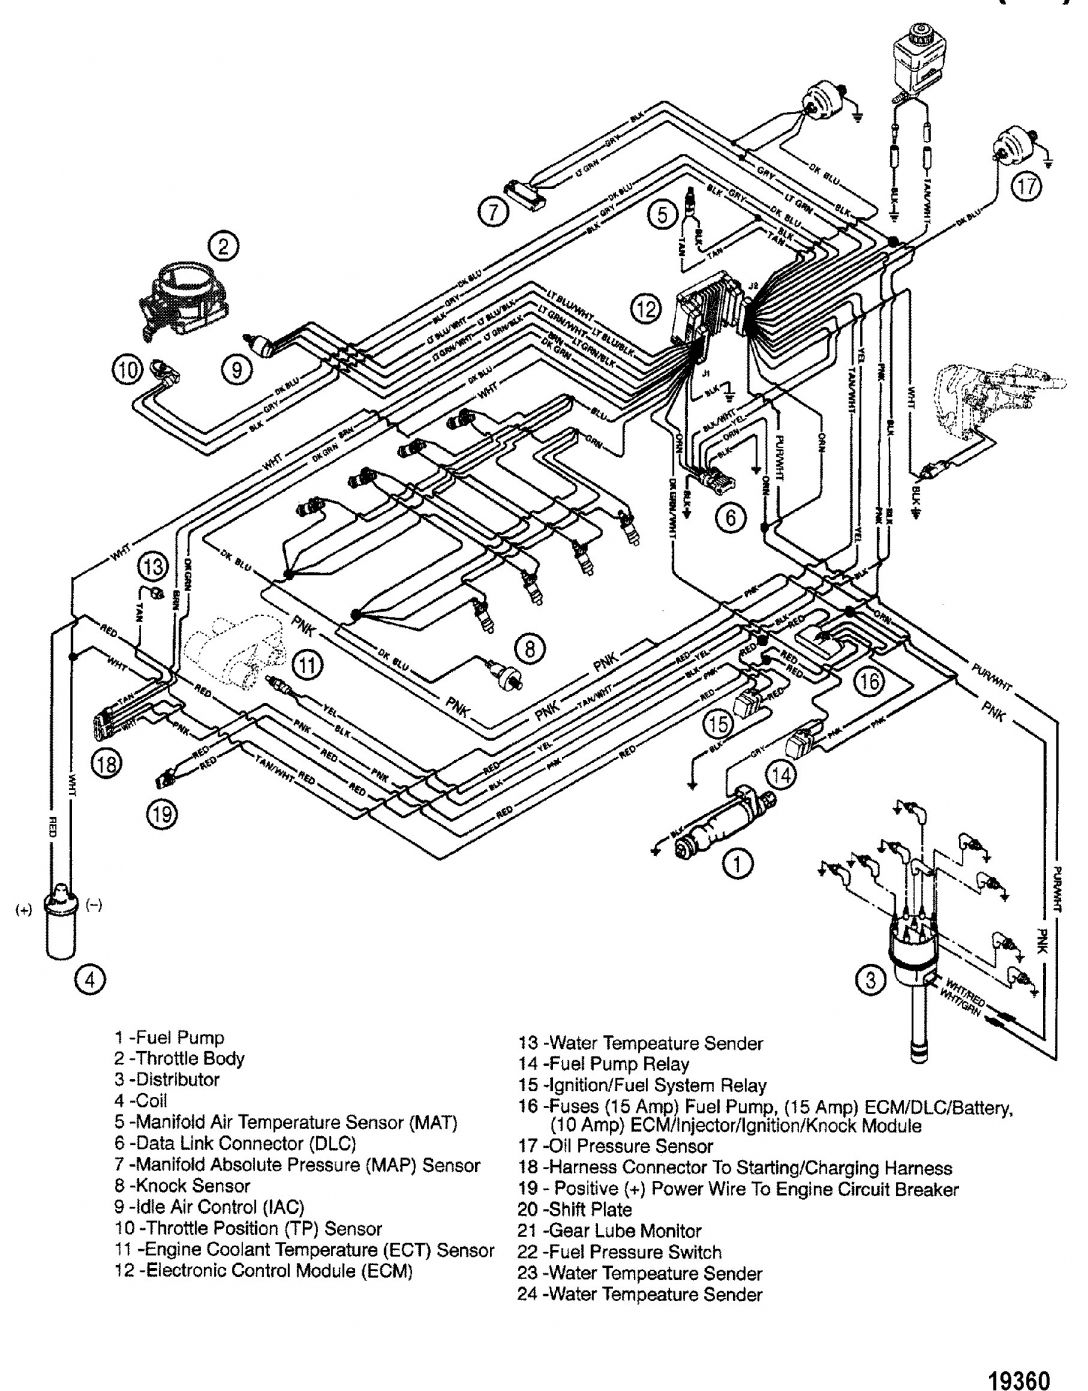 Mercruiser 140 Engine Wiring Diagram and Mercruiser Engine ...